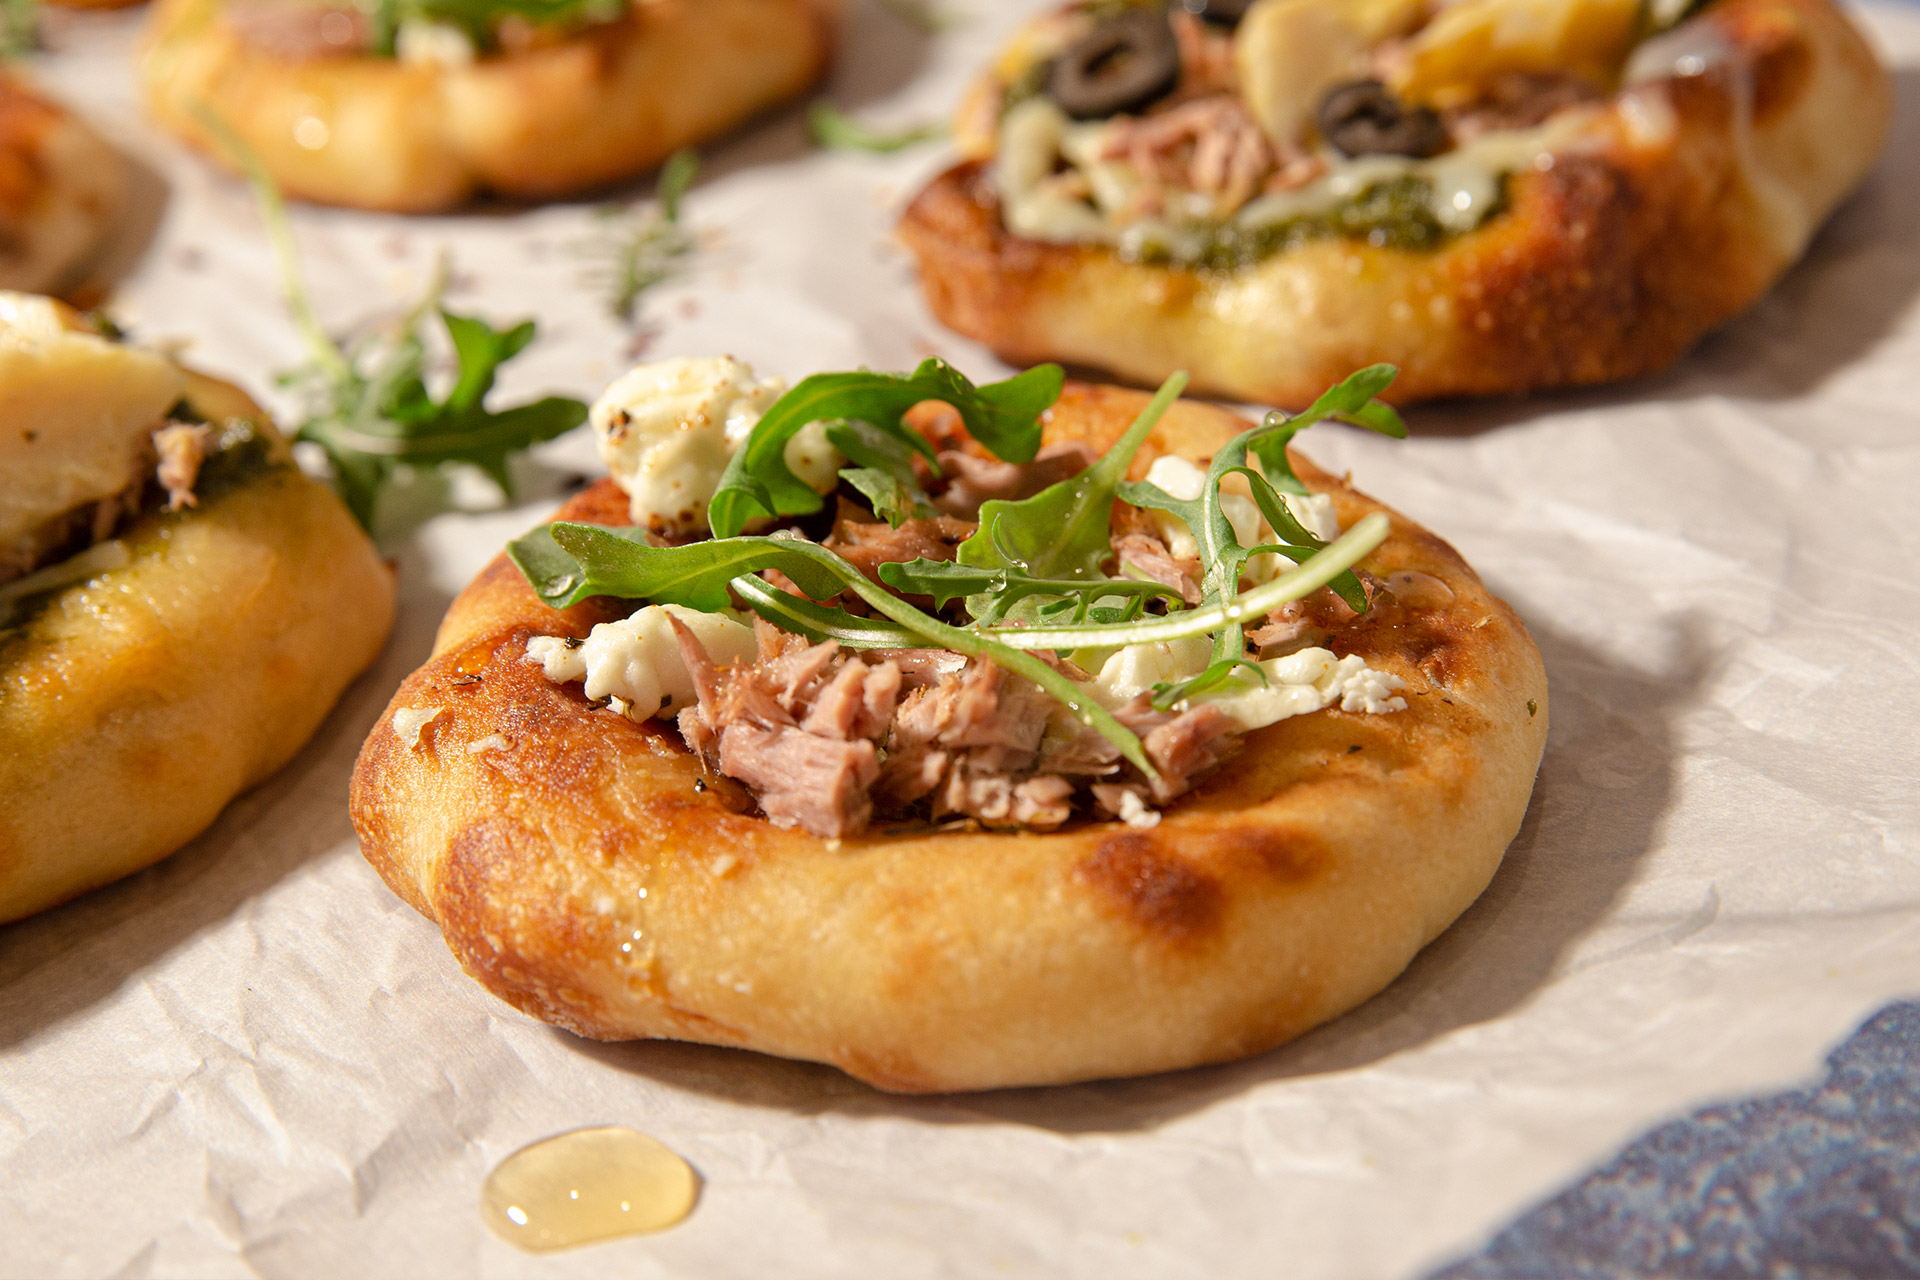 Tuna Pizza With Goat Cheese, Arugula And Honey